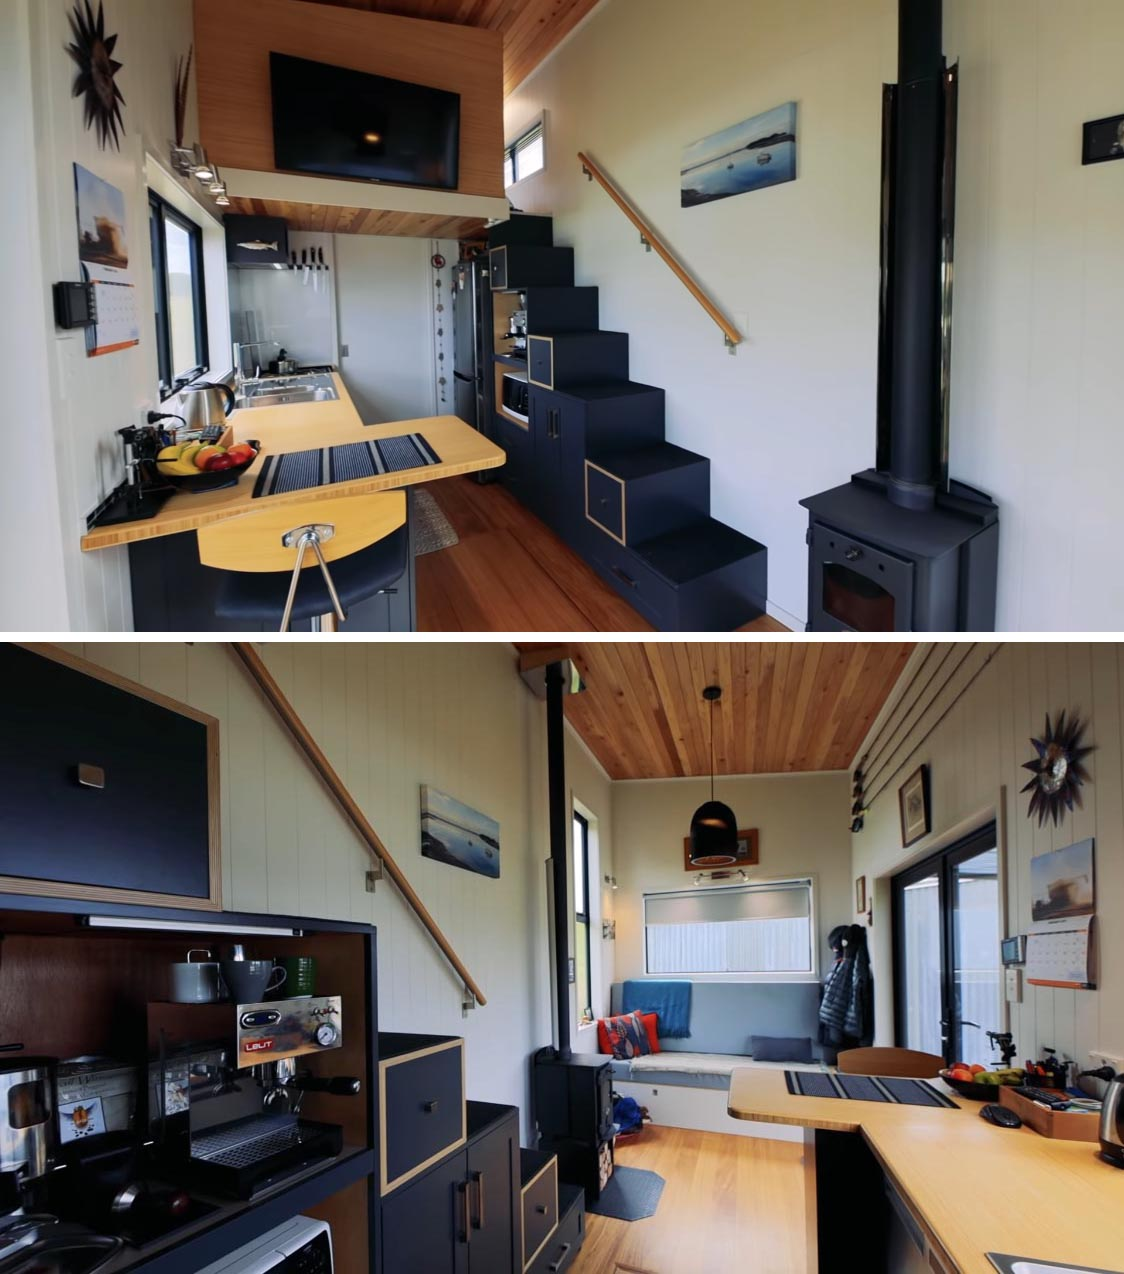 In this modern tiny home kitchen, there's plenty of storage, a stove and microwave, a dishwasher, and a full size fridge. There's also in floor storage and soft-close cabinets and drawers.